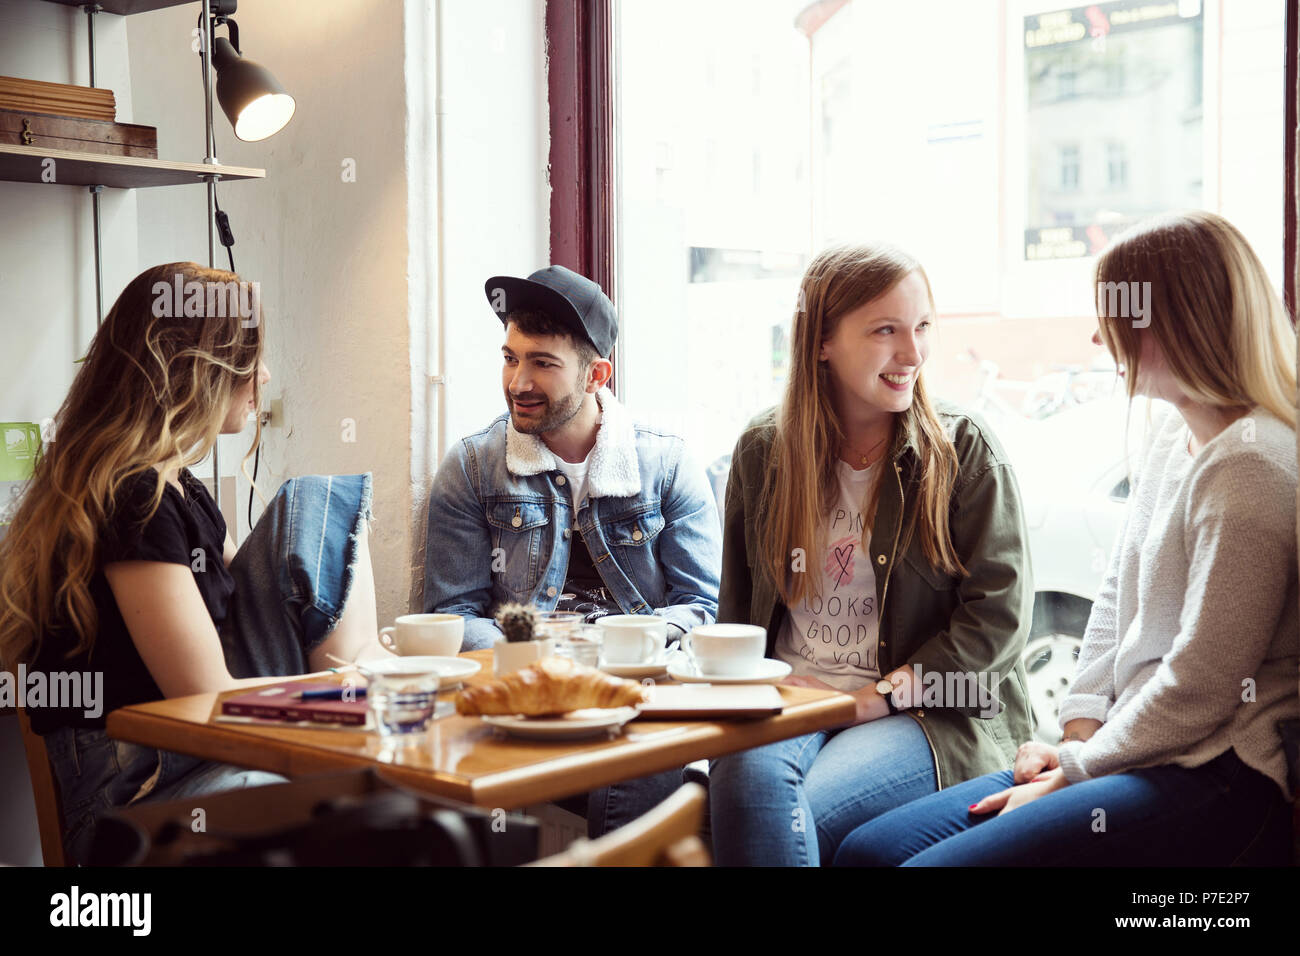 Friends chatting over coffee in cafe - Stock Image